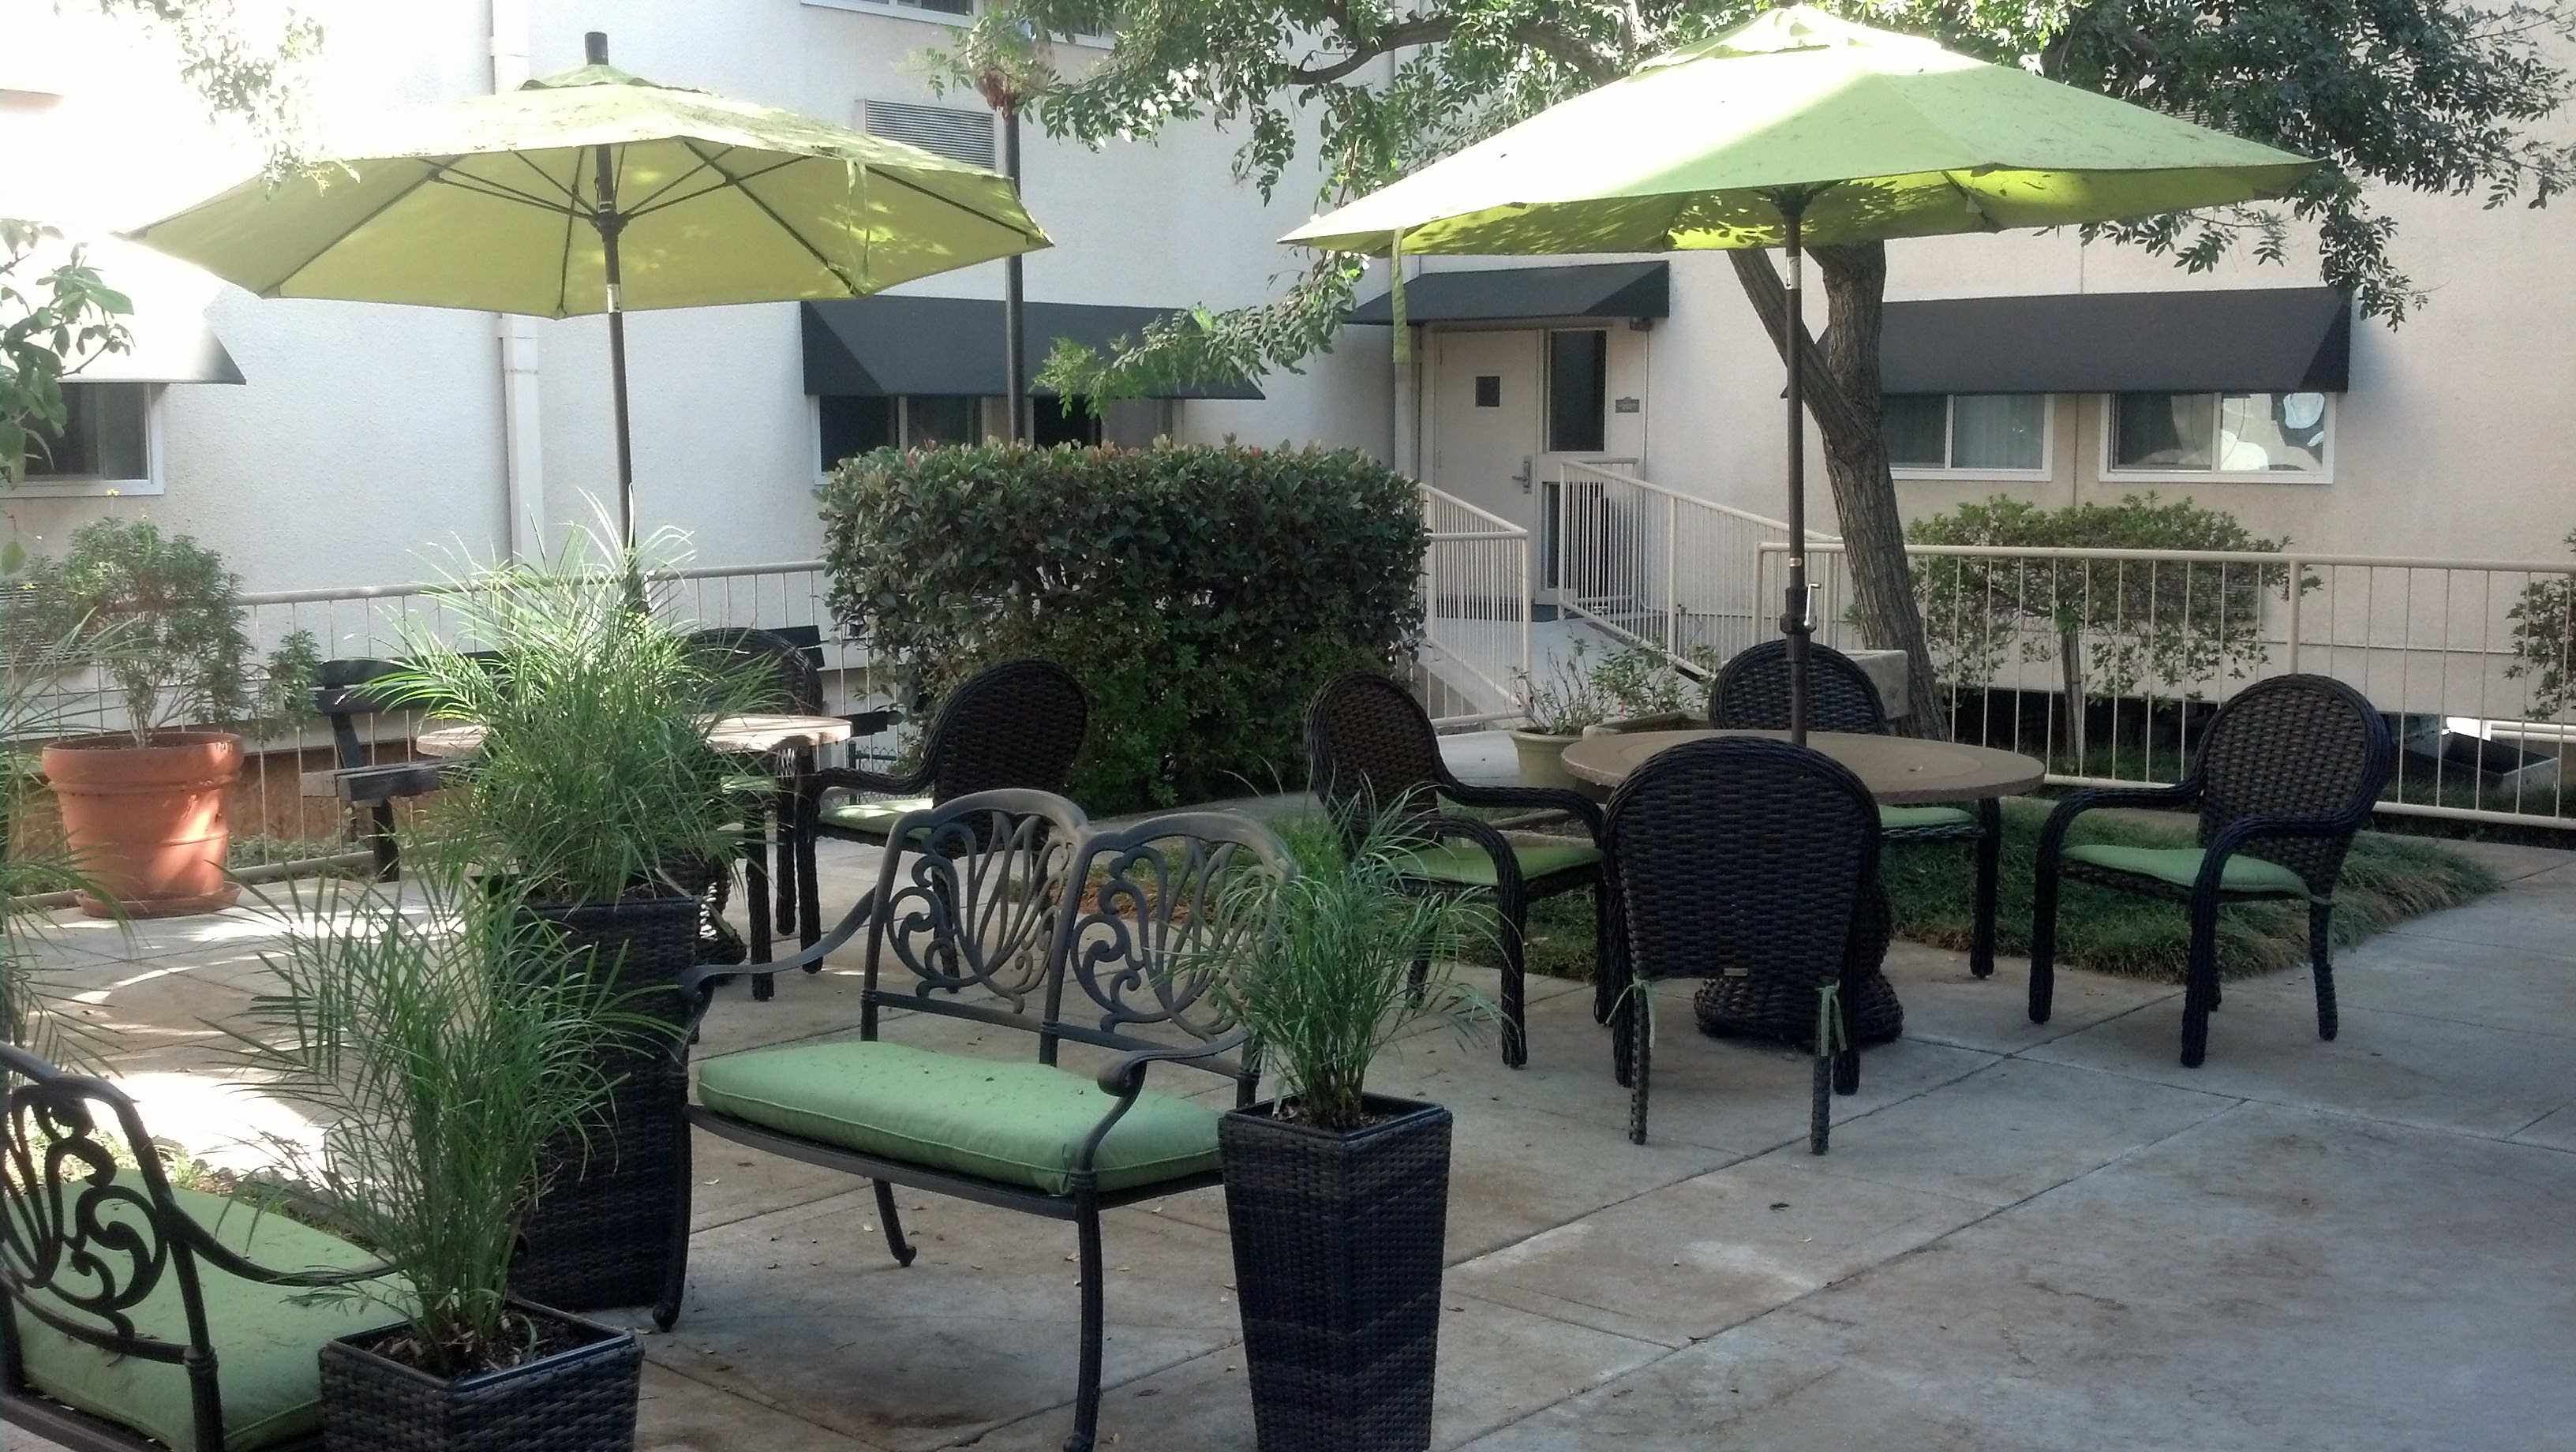 naomi outside courtyard and seating